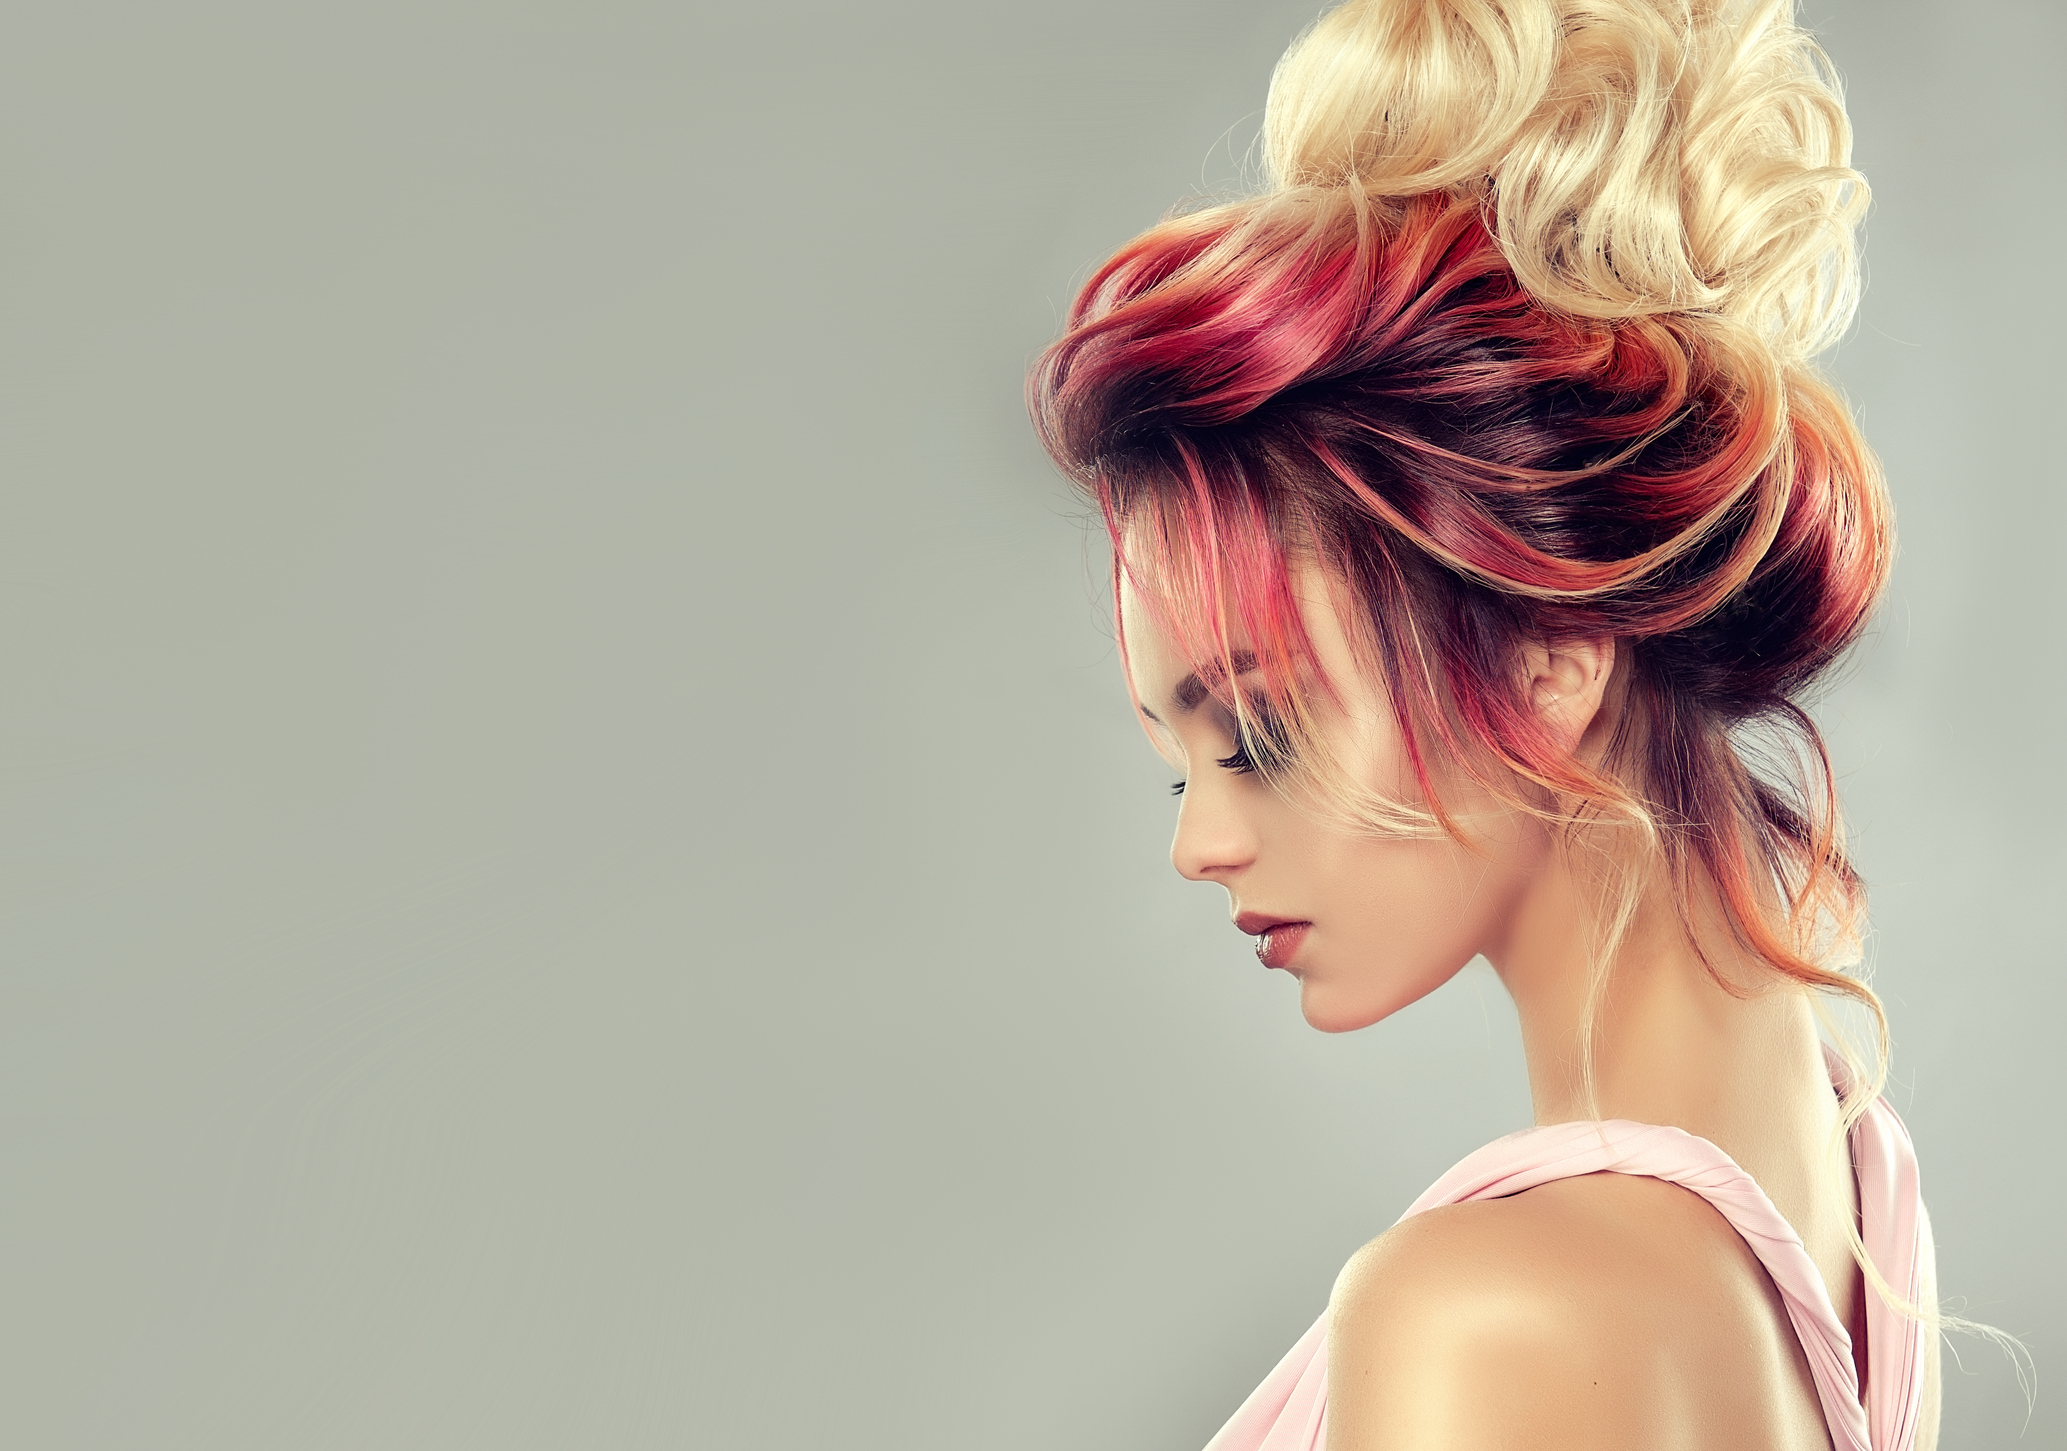 Changing yourself trendier is now easy with hair design in San Bernardino team